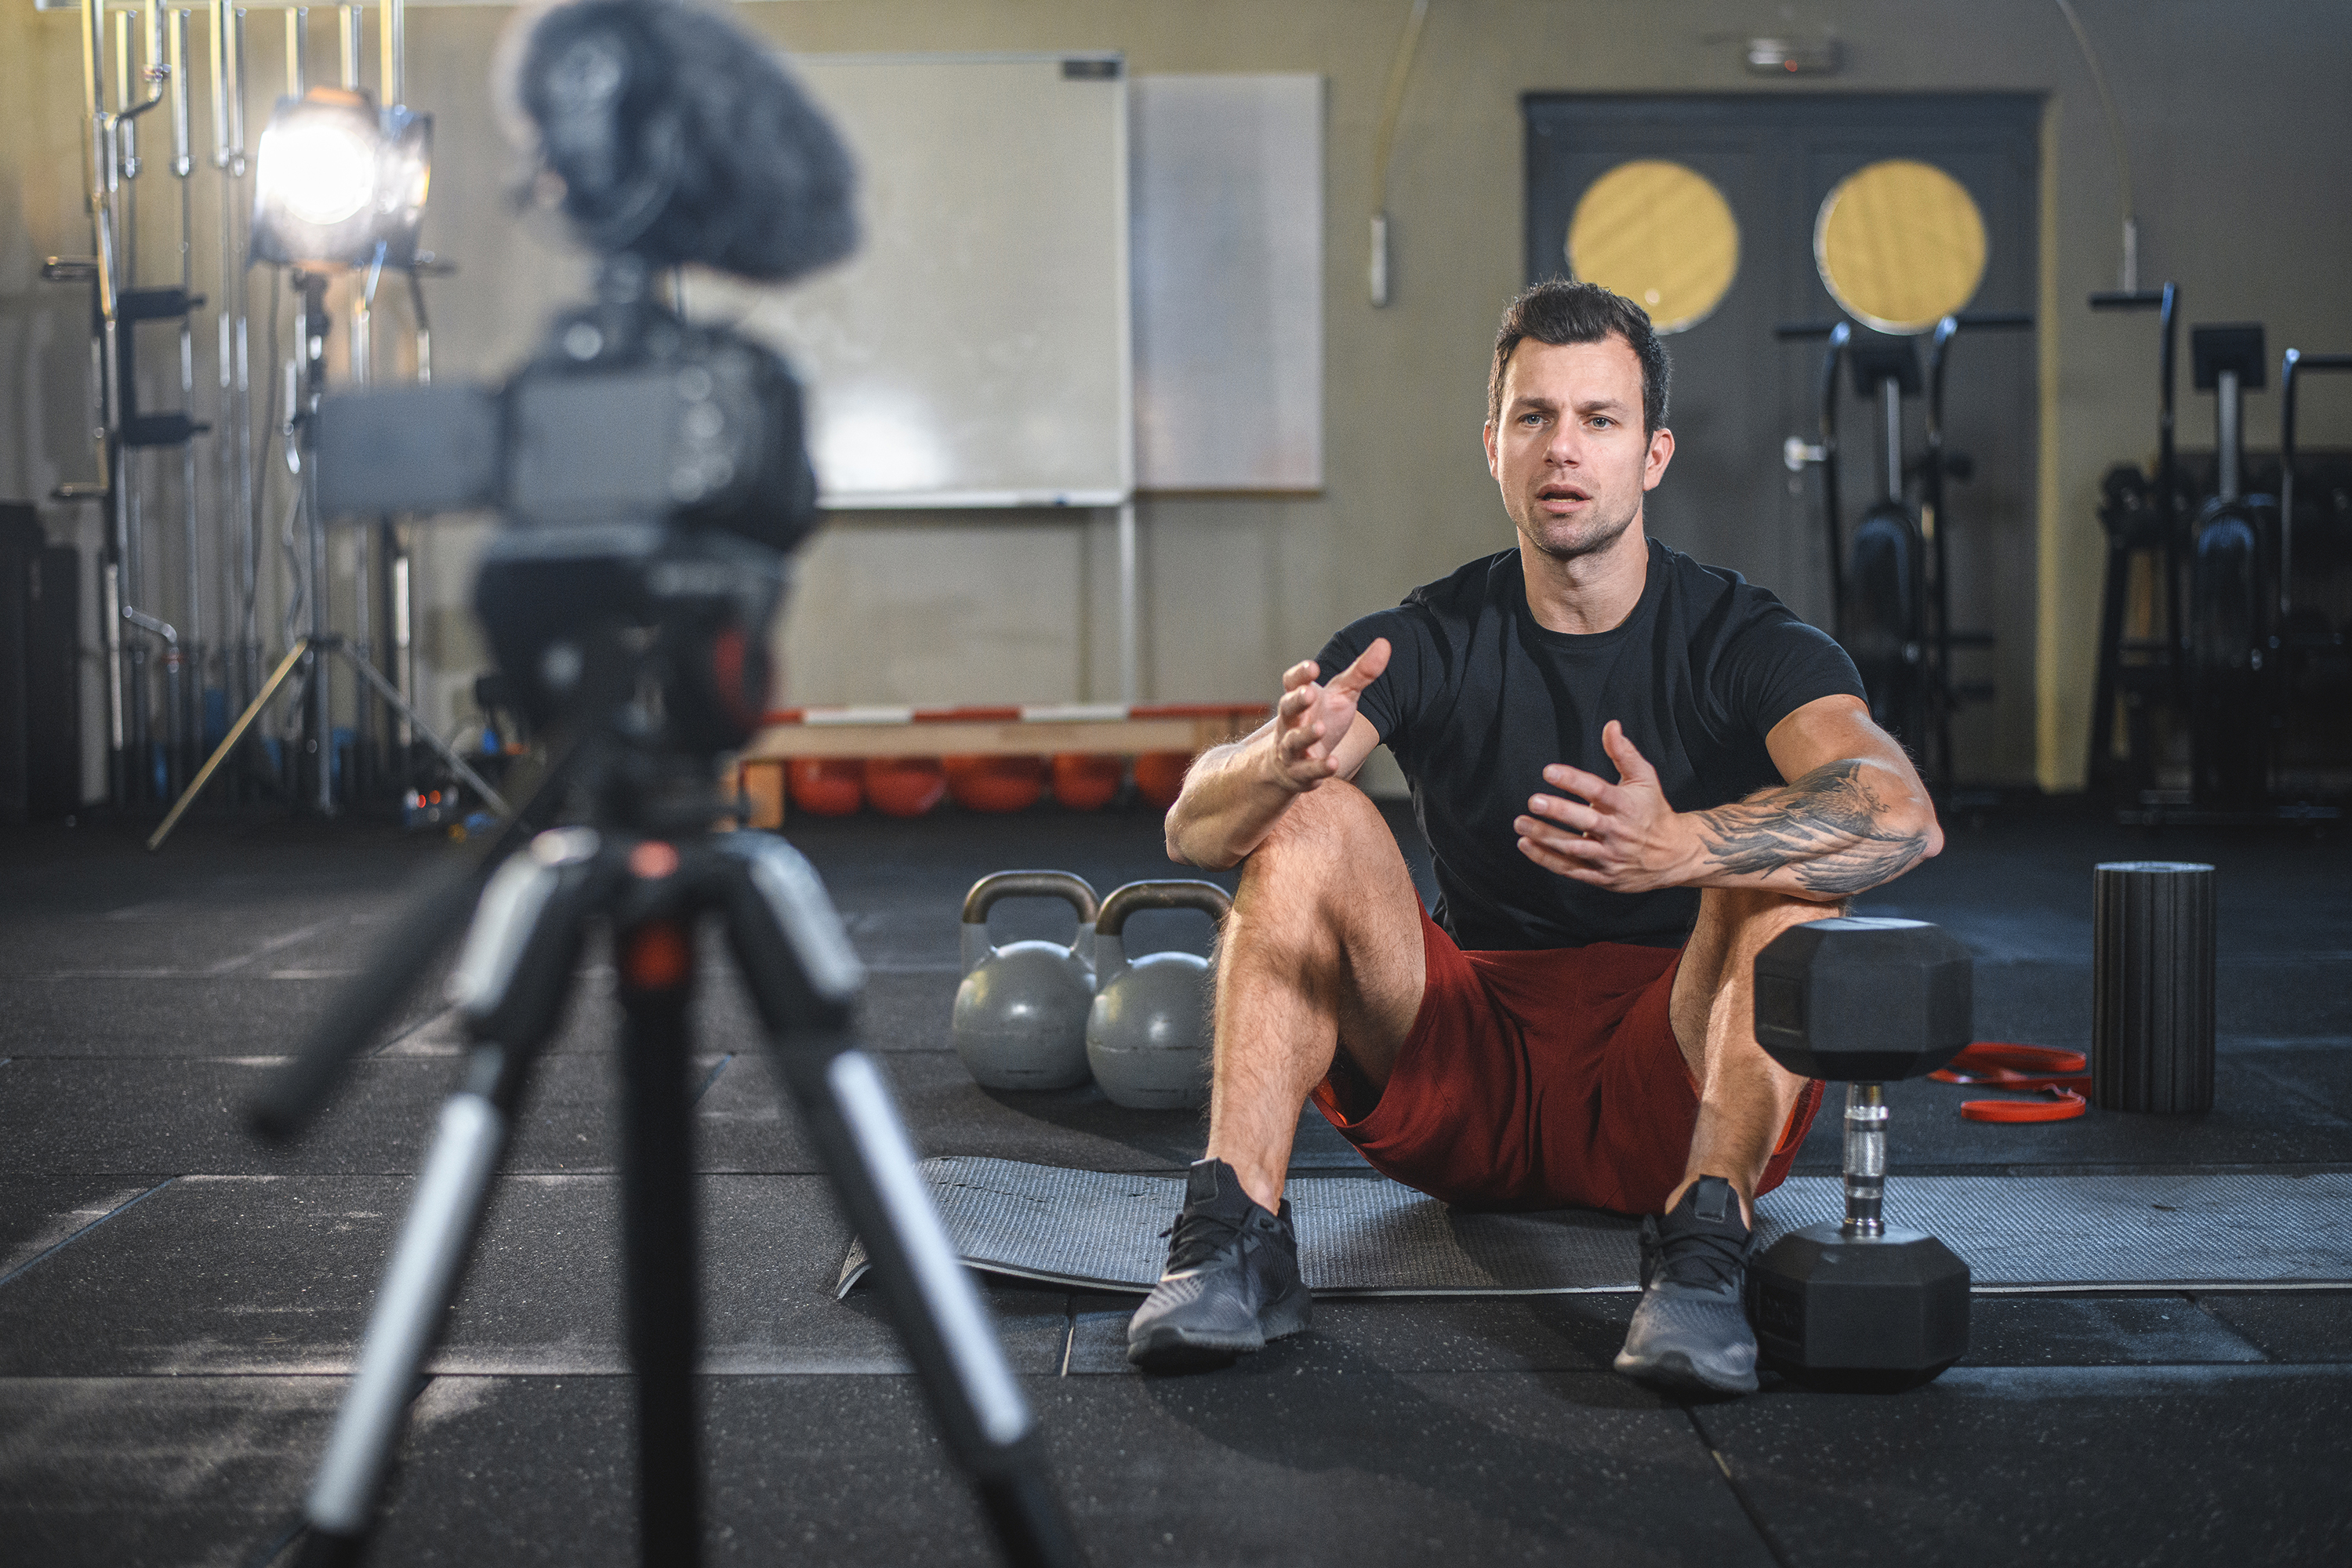 How to Revamp Your Business Post-COVID-19 as a Personal Trainer or Health Coach